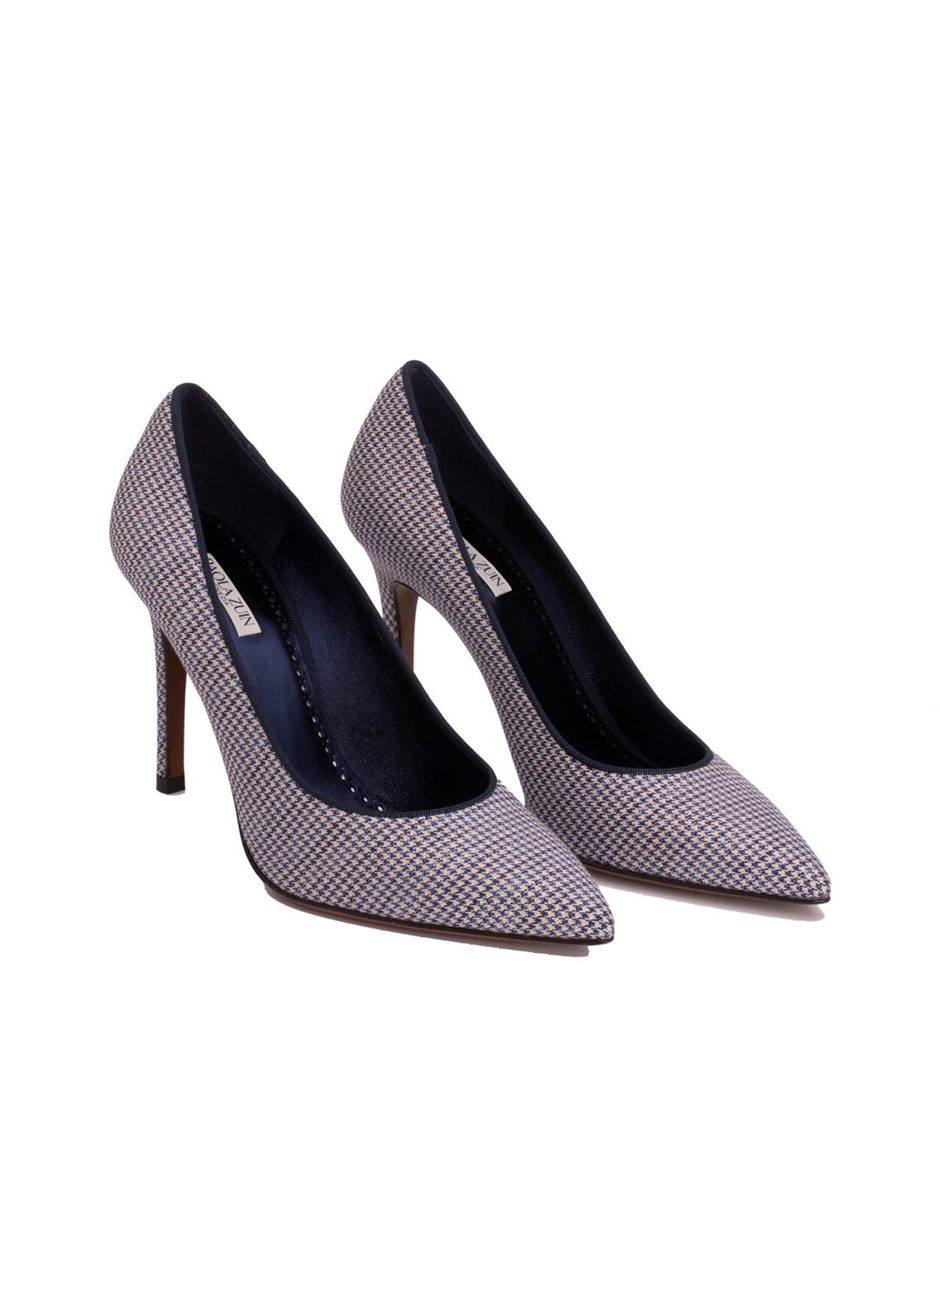 Asya90 – Pumps in starry micro houndstooth fabric